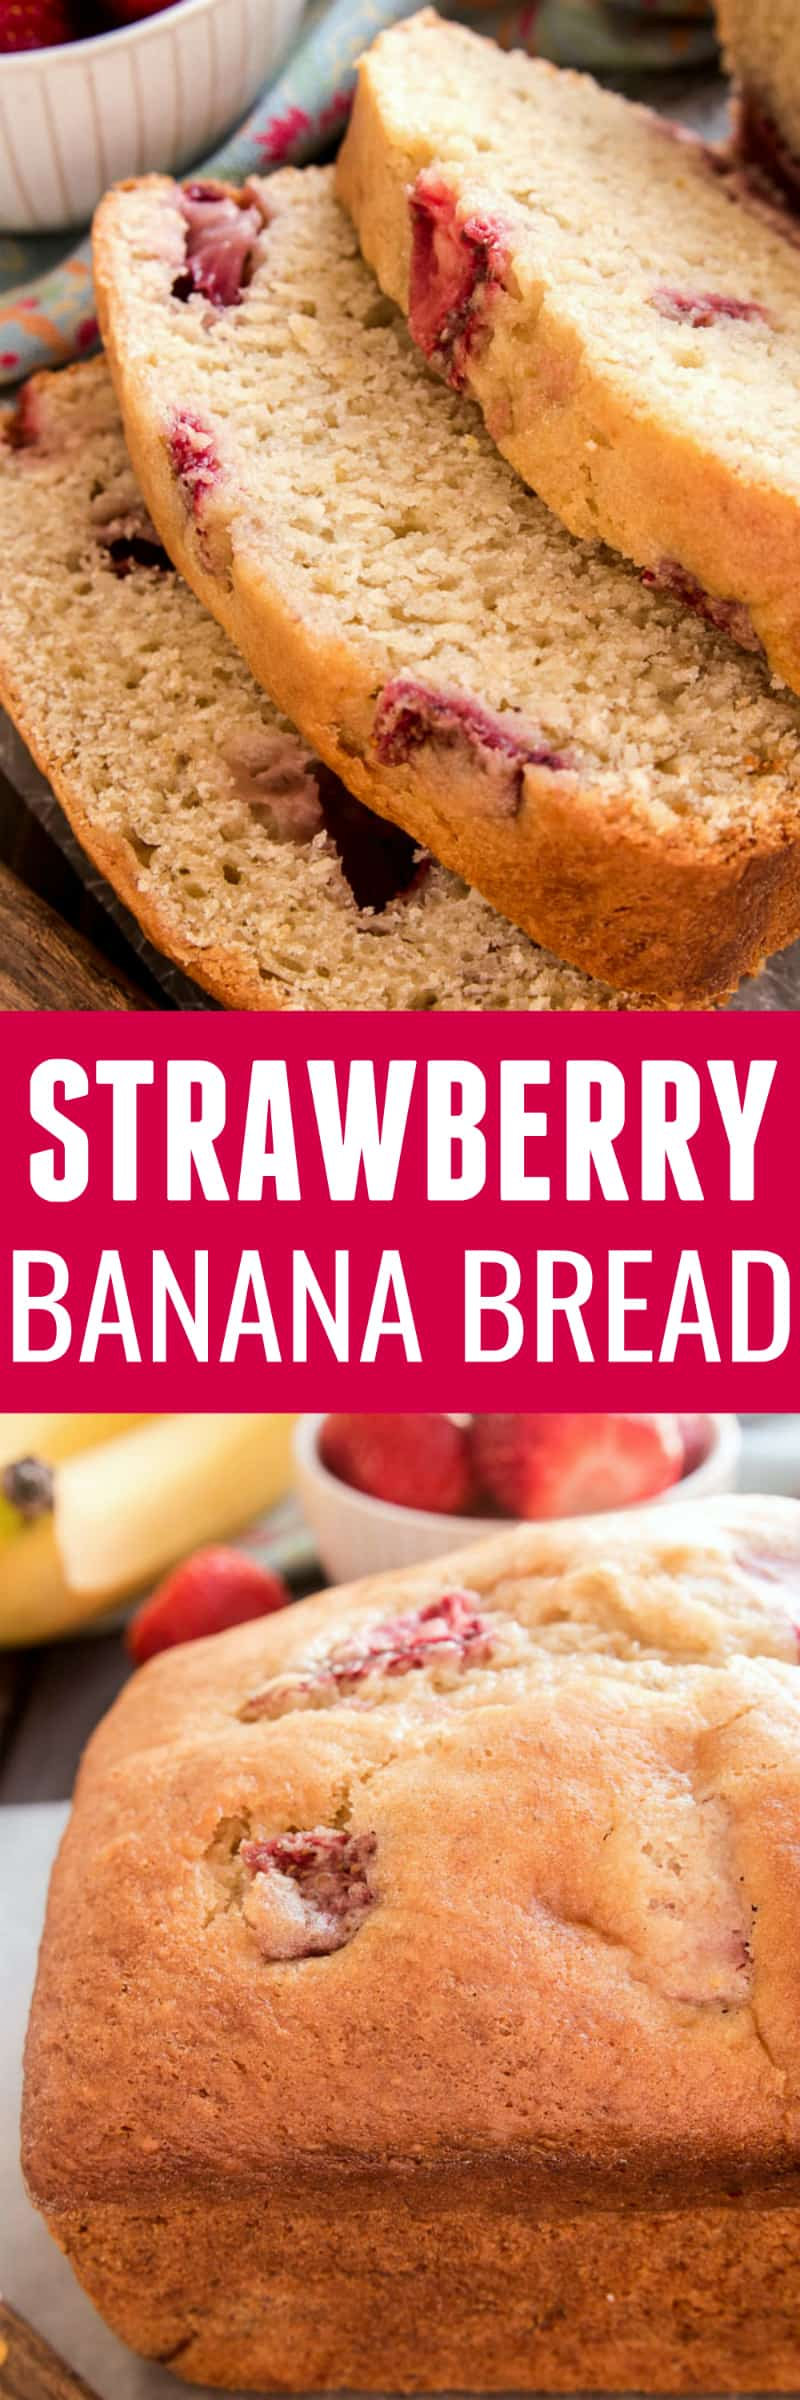 Banana Bread gets a fun new twist with the addition of fresh strawberries! This Strawberry Banana Bread starts with the BEST Banana Bread recipe and adds just a few simple ingredients to take it to the next level. Perfect for breakfast, snack, or even dessert...this recipe is packed with delicious flavor and sure to become a new favorite. If your family loves fresh, homemade bread, they'll go crazy for this delicious Strawberry Banana Bread! And you'll love how easy it is to make!